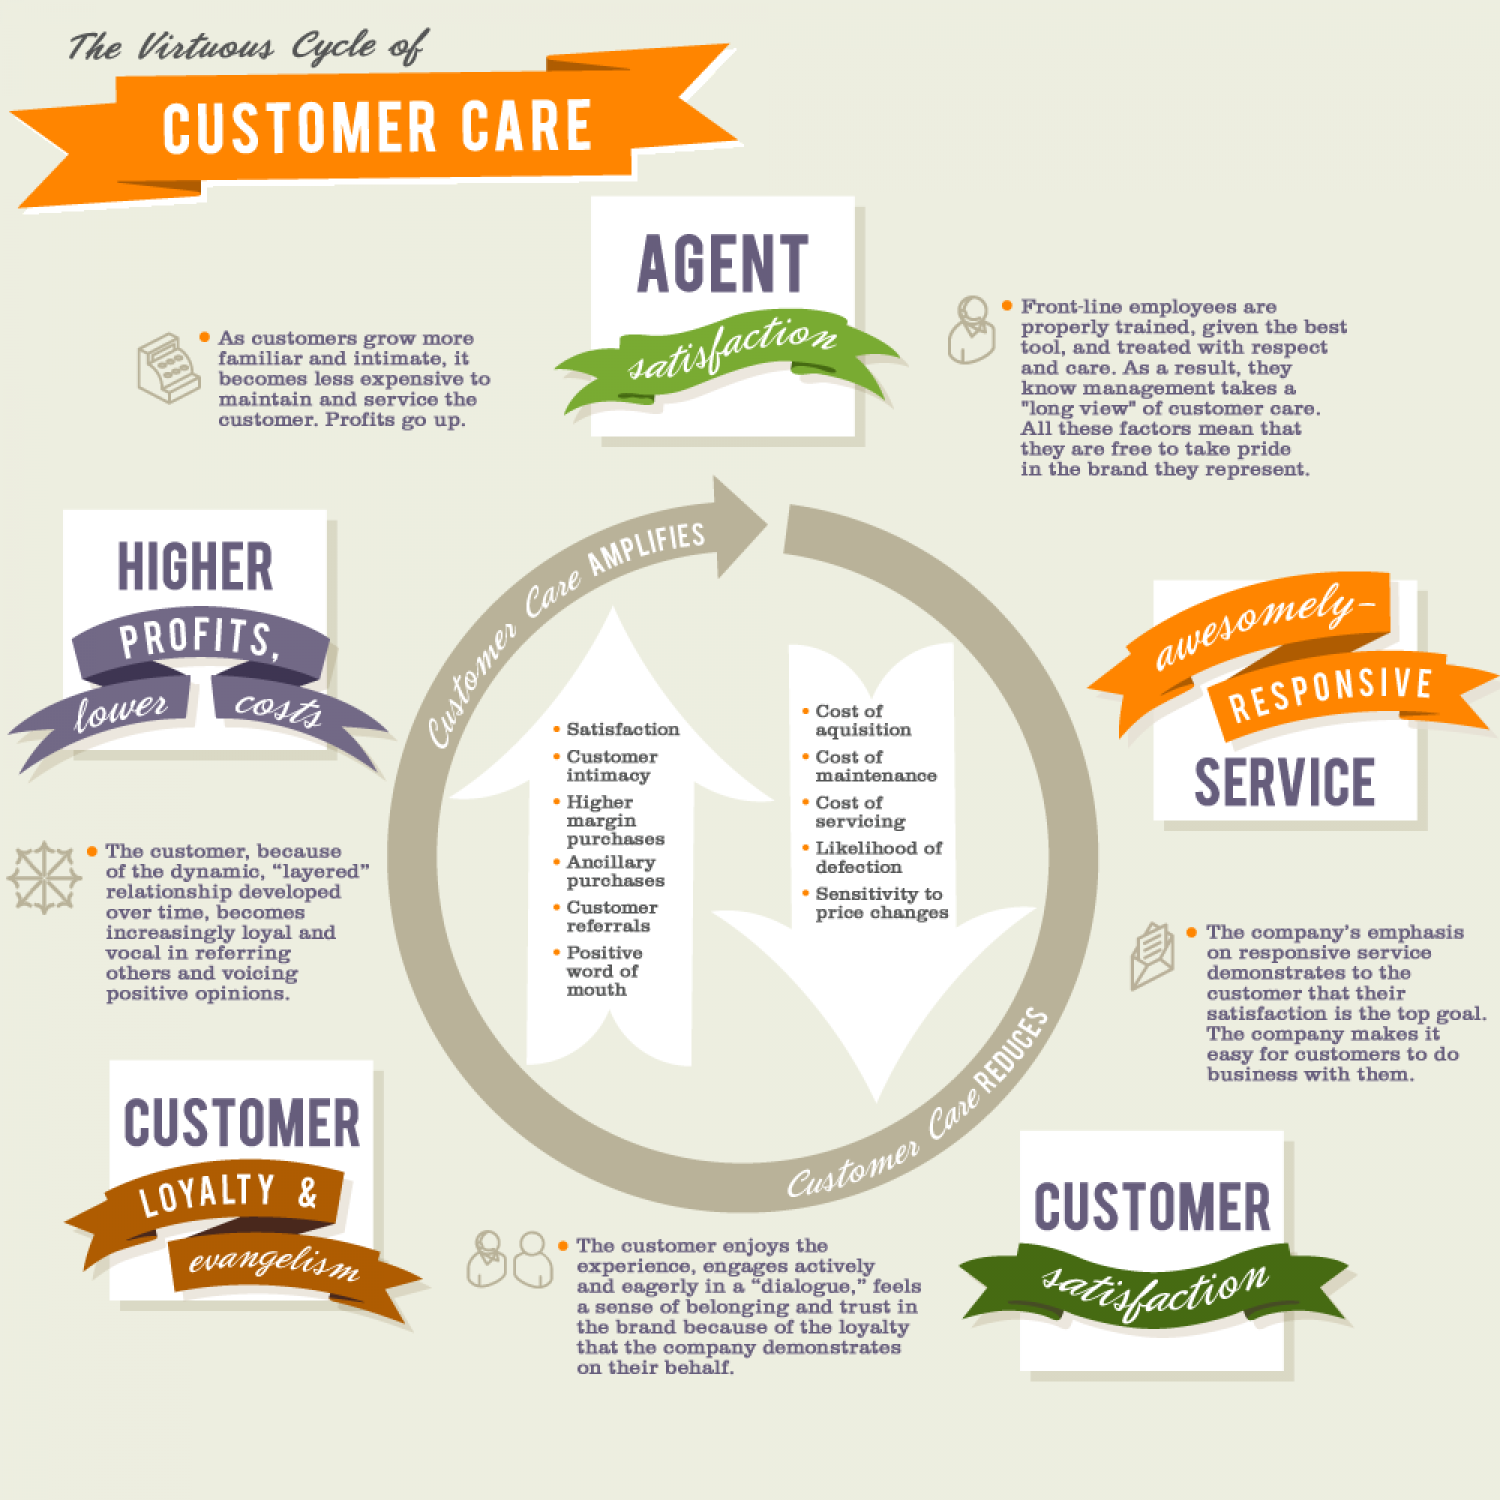 The Virtuous Cycle of Customer Care  Infographic